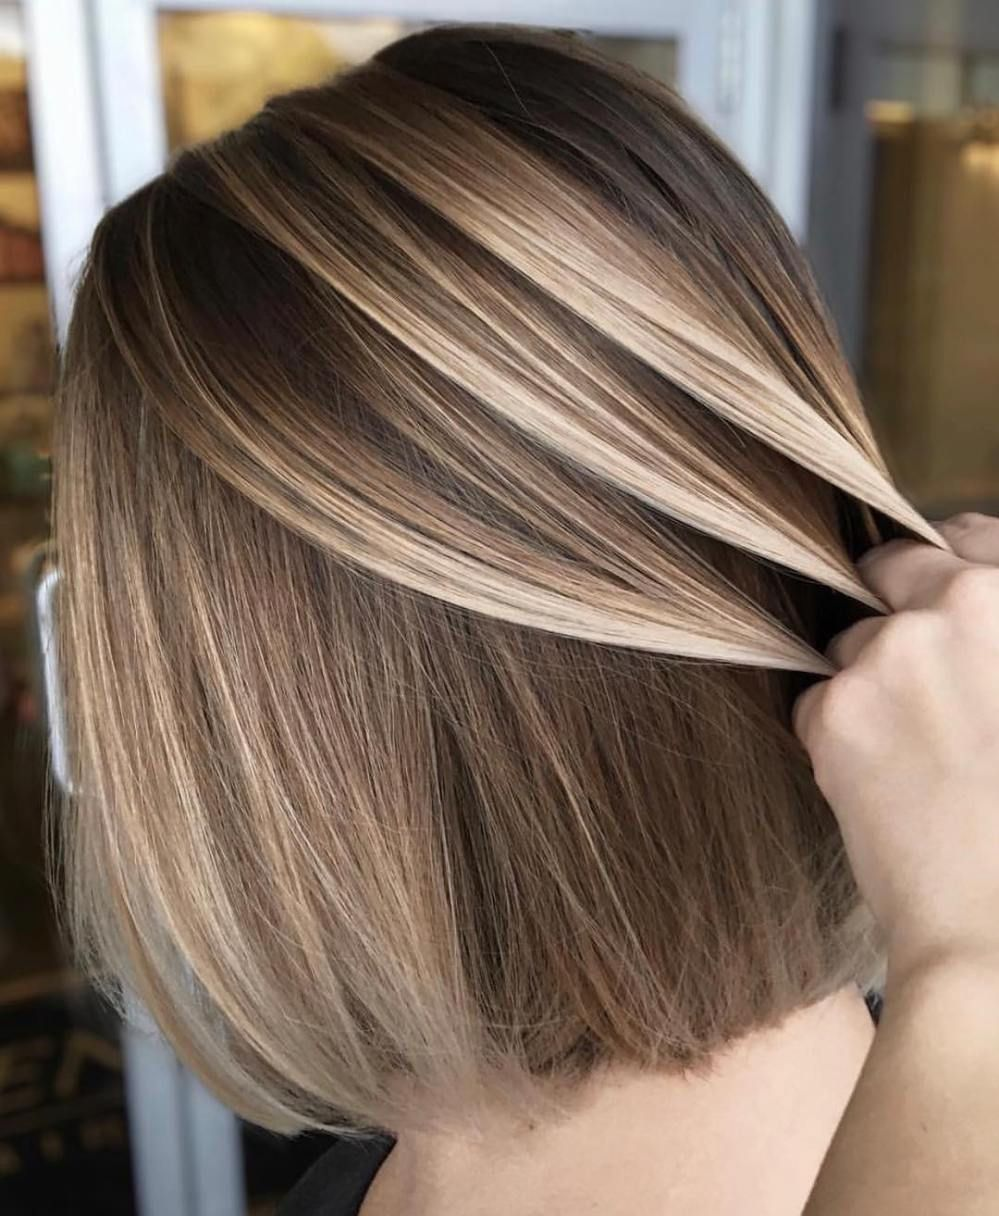 70 Flattering Balayage Hair Color Ideas For 2020 Highlights Brown Hair Short Highlights Brown Hair Balayage Brown Hair Balayage